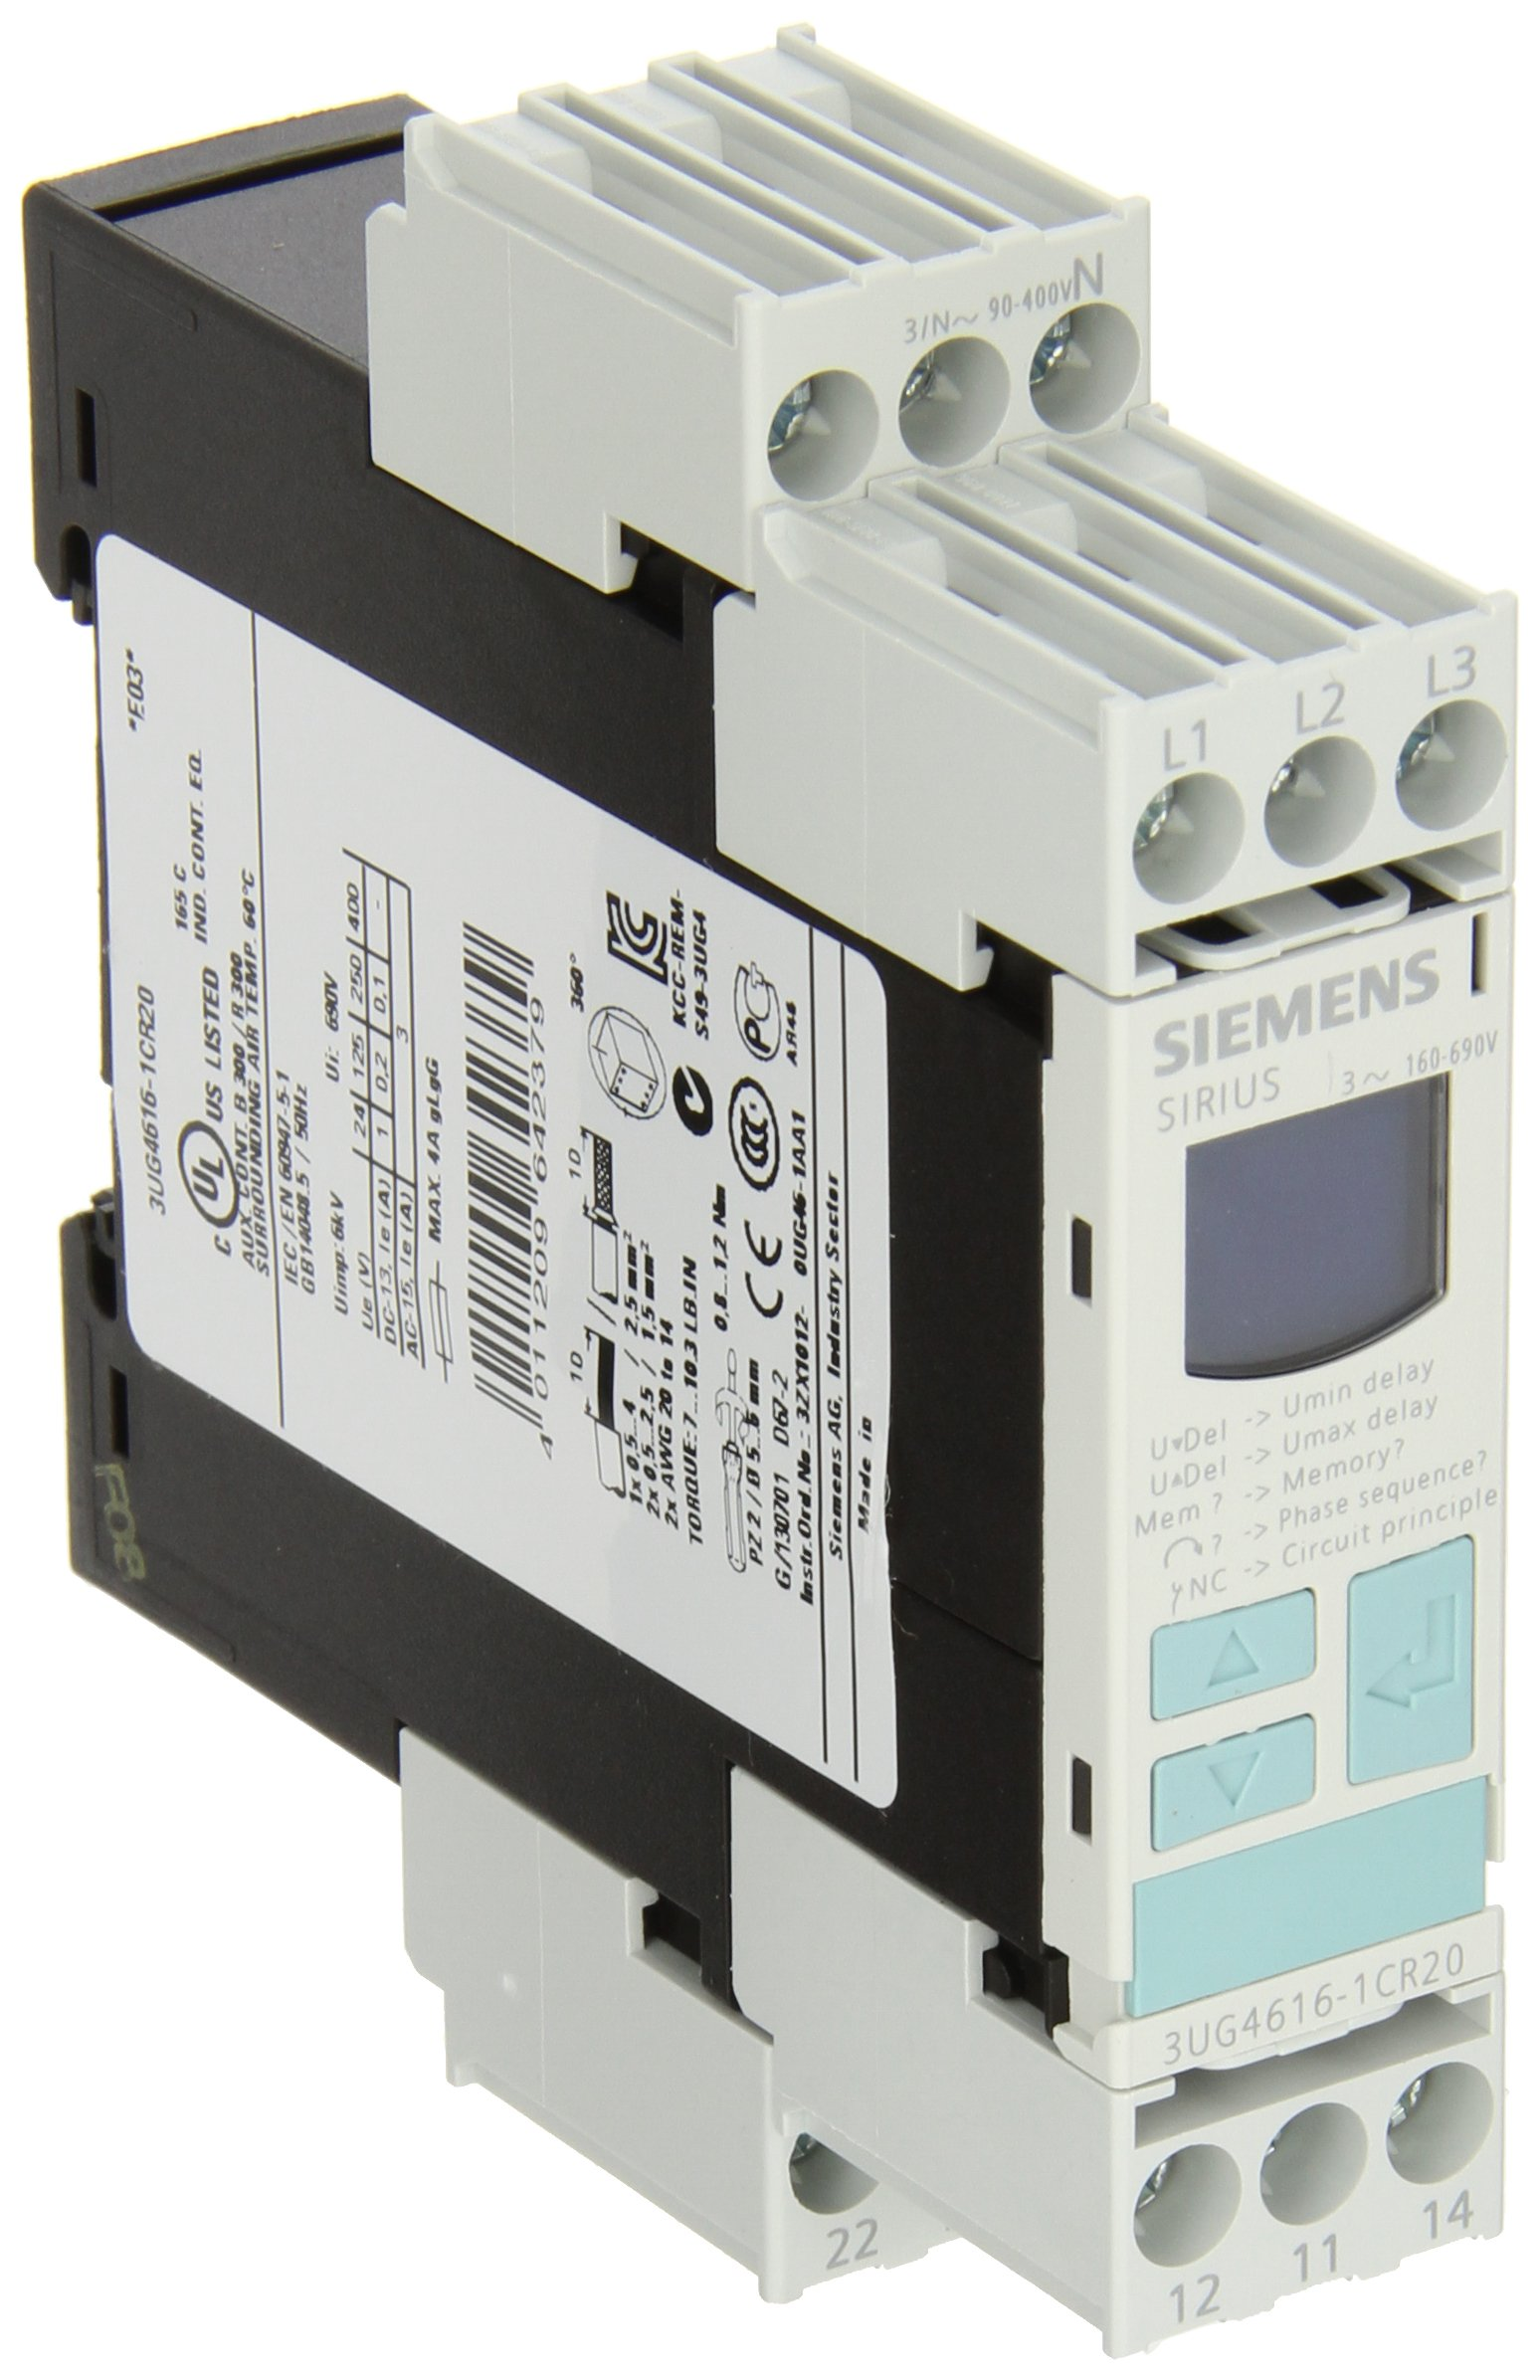 Siemens 3UG4615-1CR20 Monitoring Relay, Three Phase Voltage, Insulation Monitoring, 22.5mm Width, Screw Terminal, 1CO For Vmin and Vmax Contacts, 0-20s For Vmin and Vmax Delay Time, 160-690 Line Supply Voltage by SIEMENS